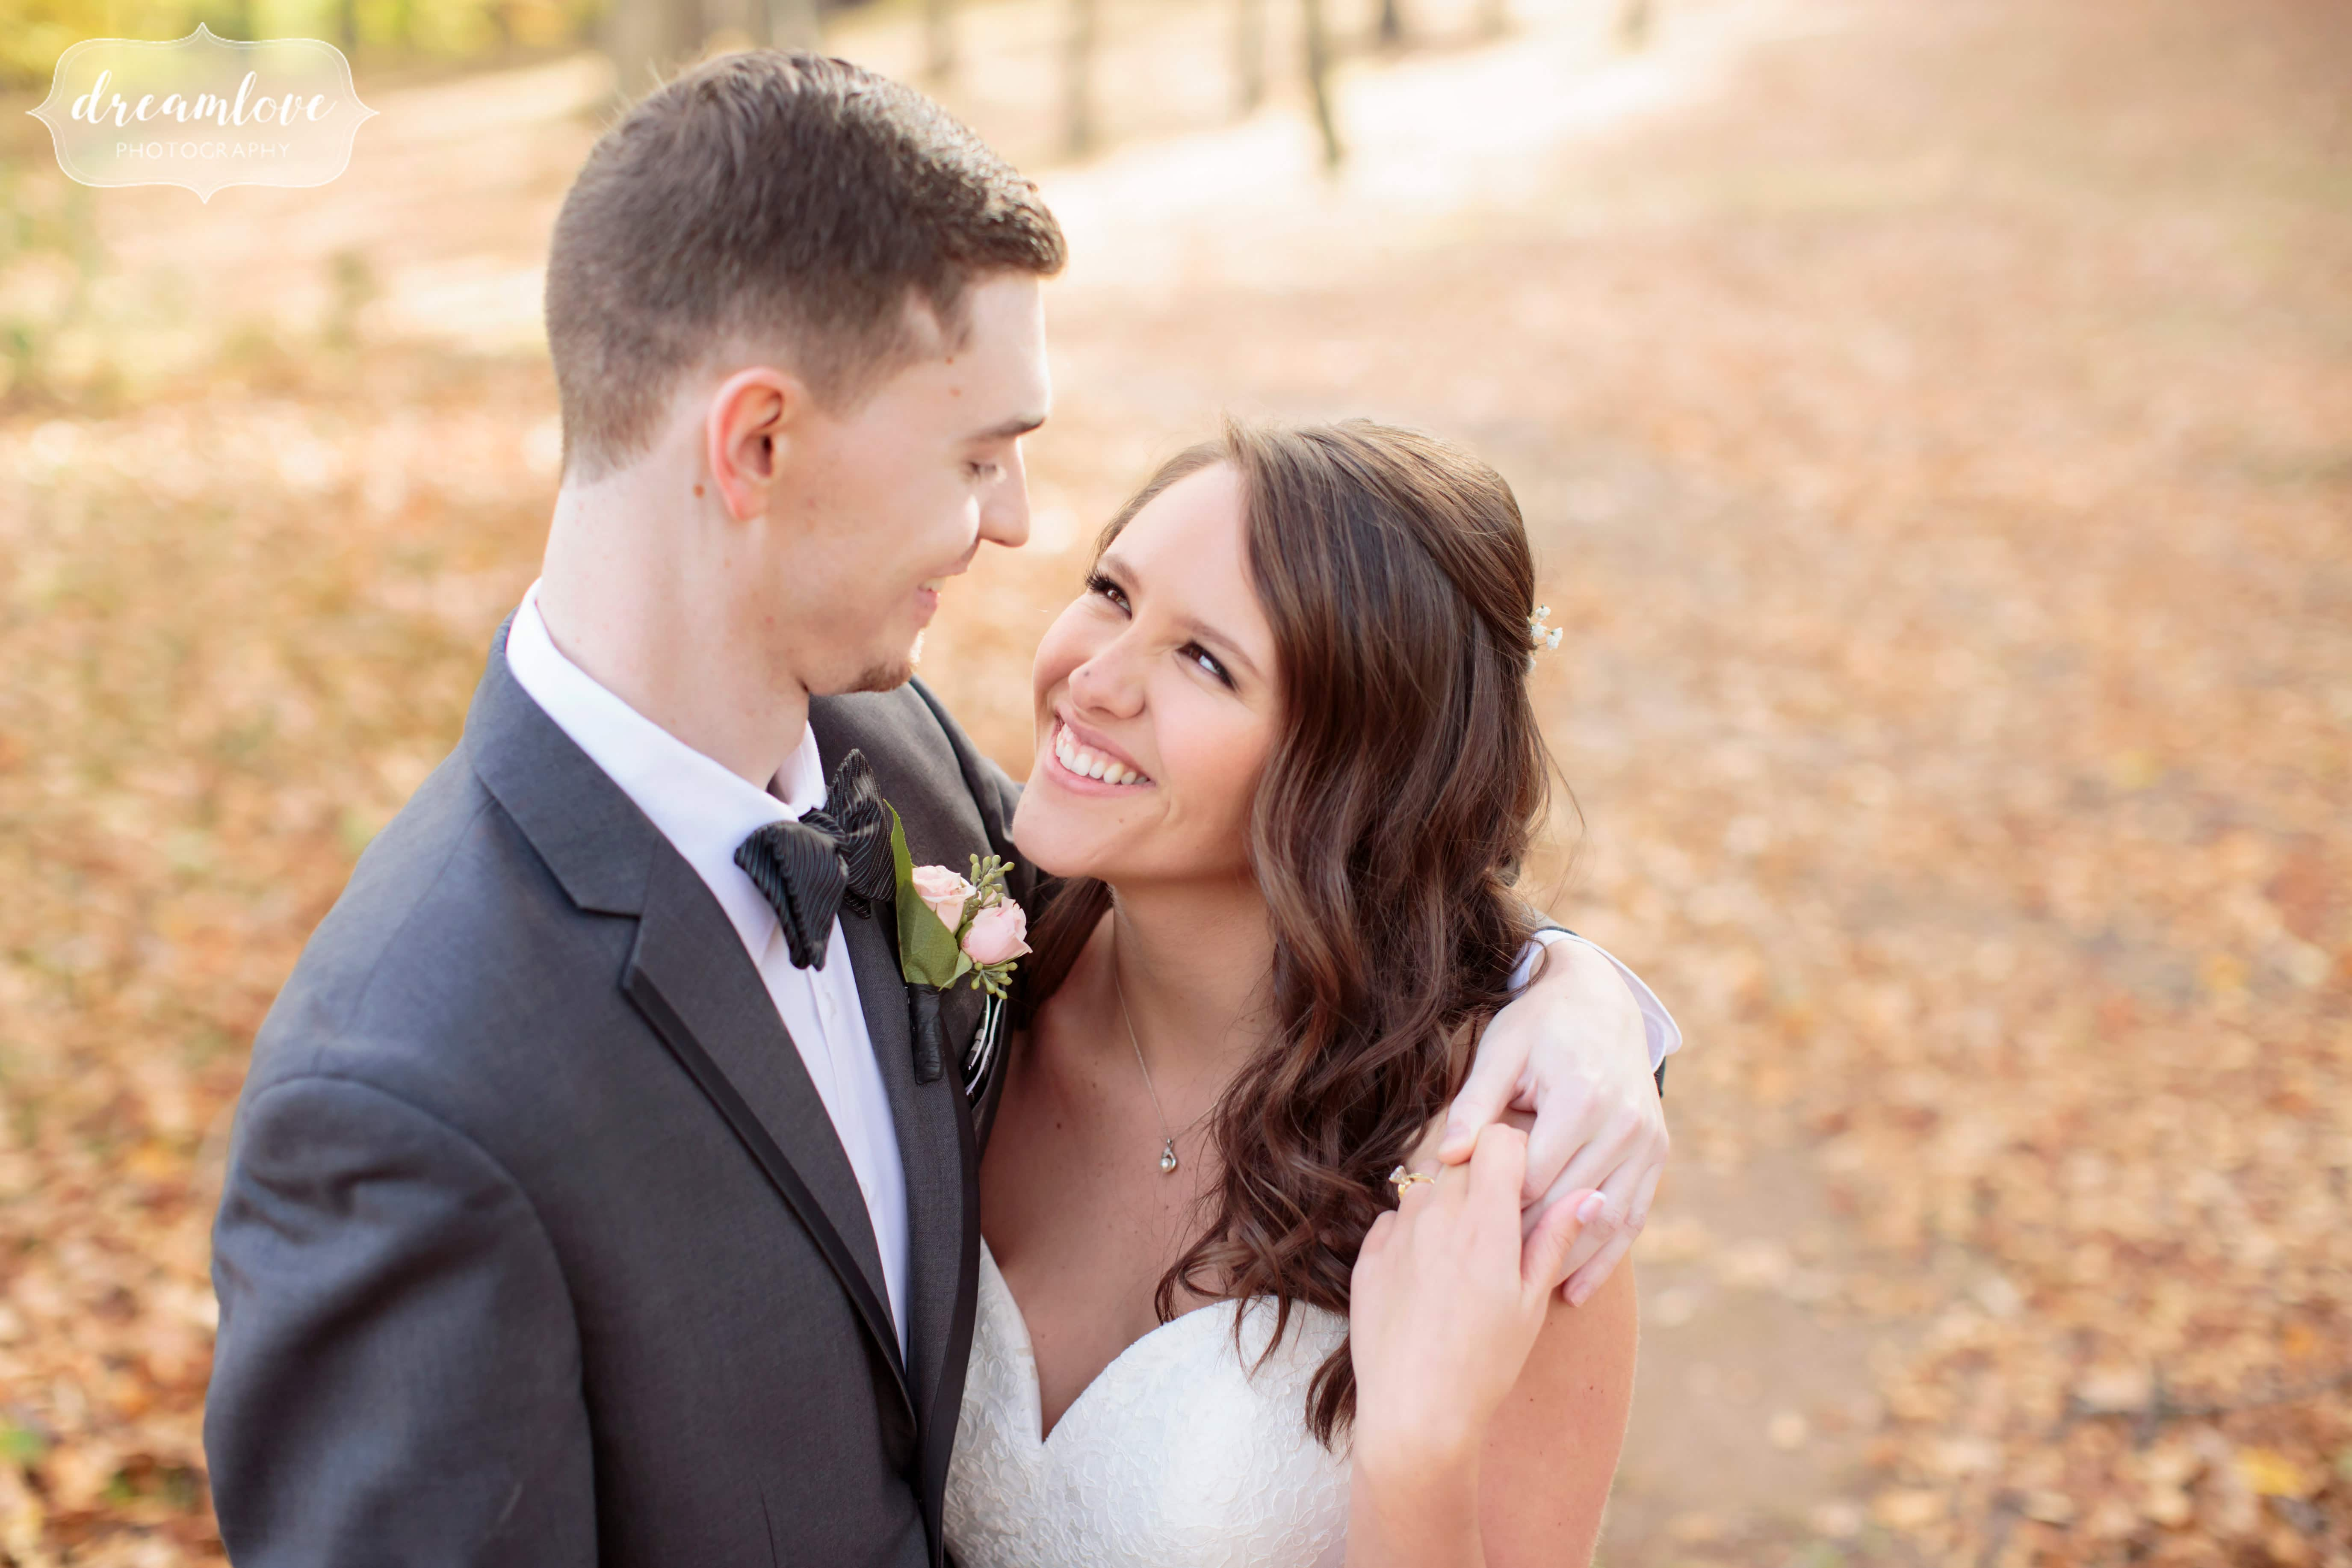 The bride and groom embrace in the woods before their forest wedding at the Pavilion on Crystal Lake in CT.